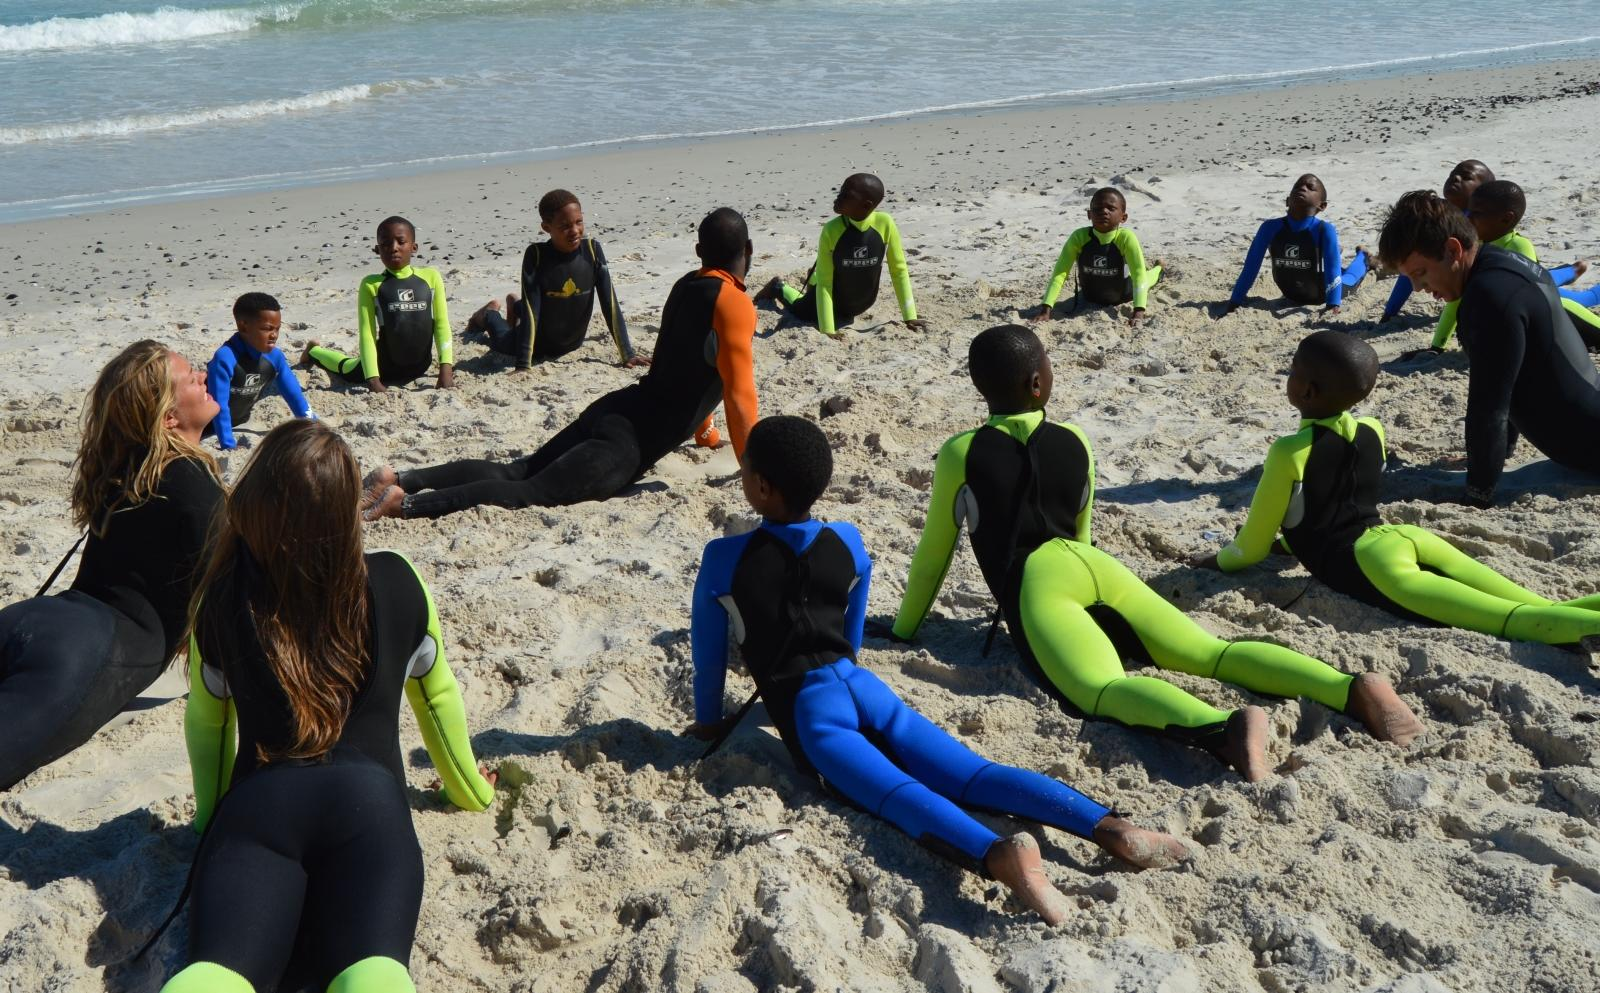 Volunteers and South African children stretch on a surfing program for last minute volunteering abroad.